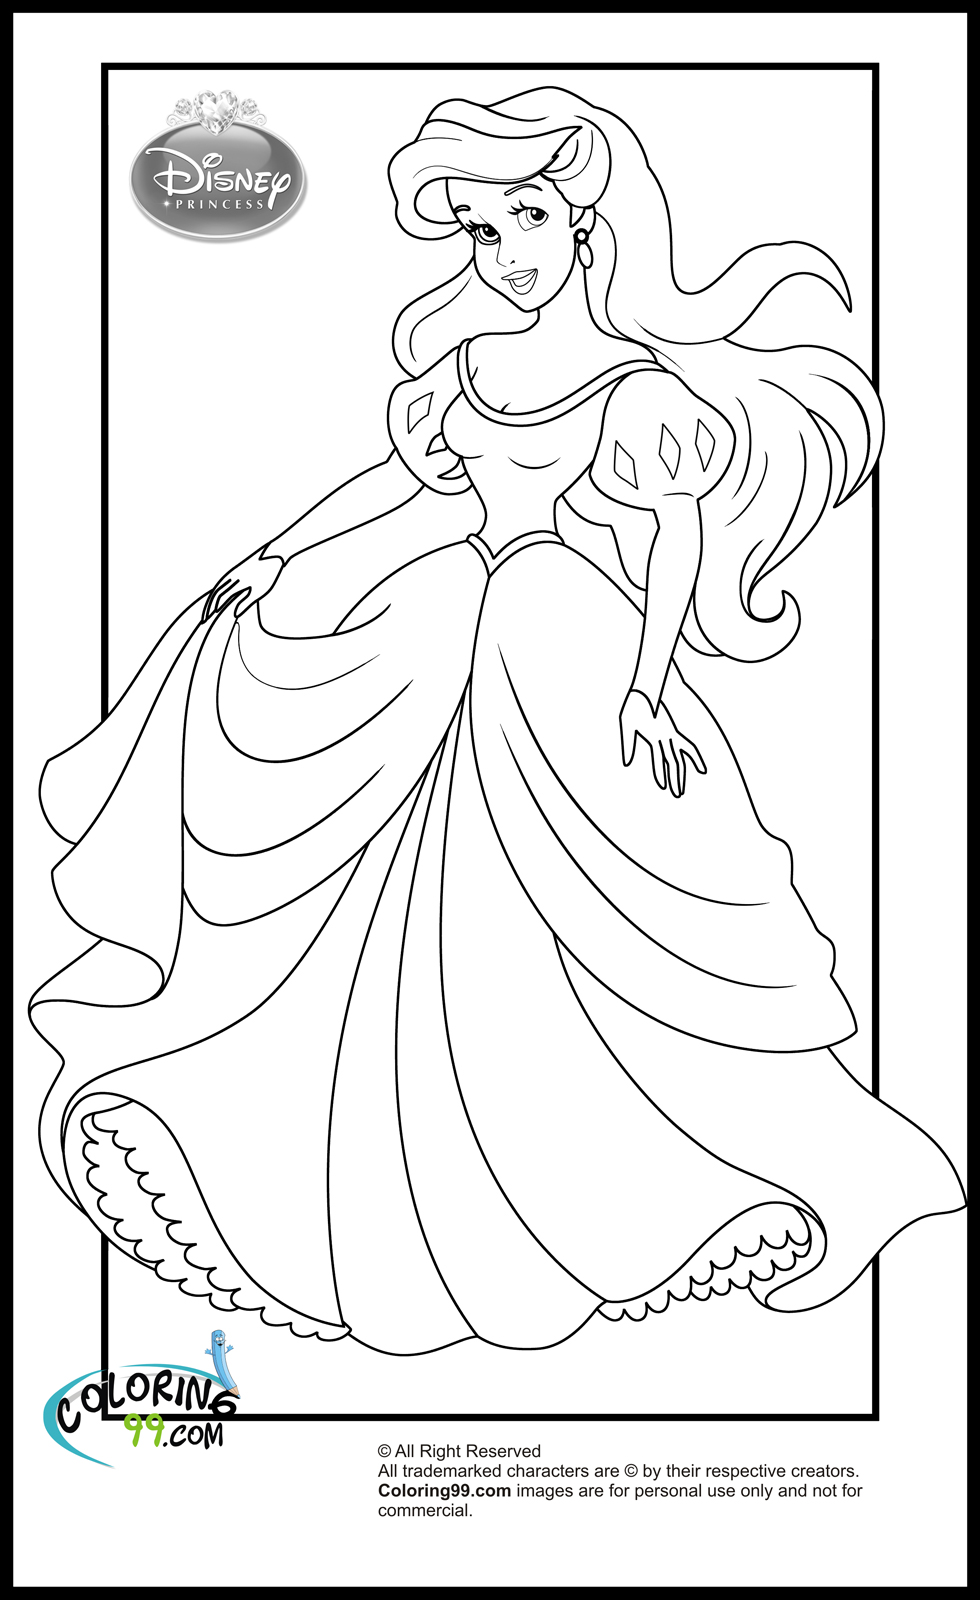 Disney Princess Coloring Pages Minister Coloring Ariel Princess Coloring Pages Printable